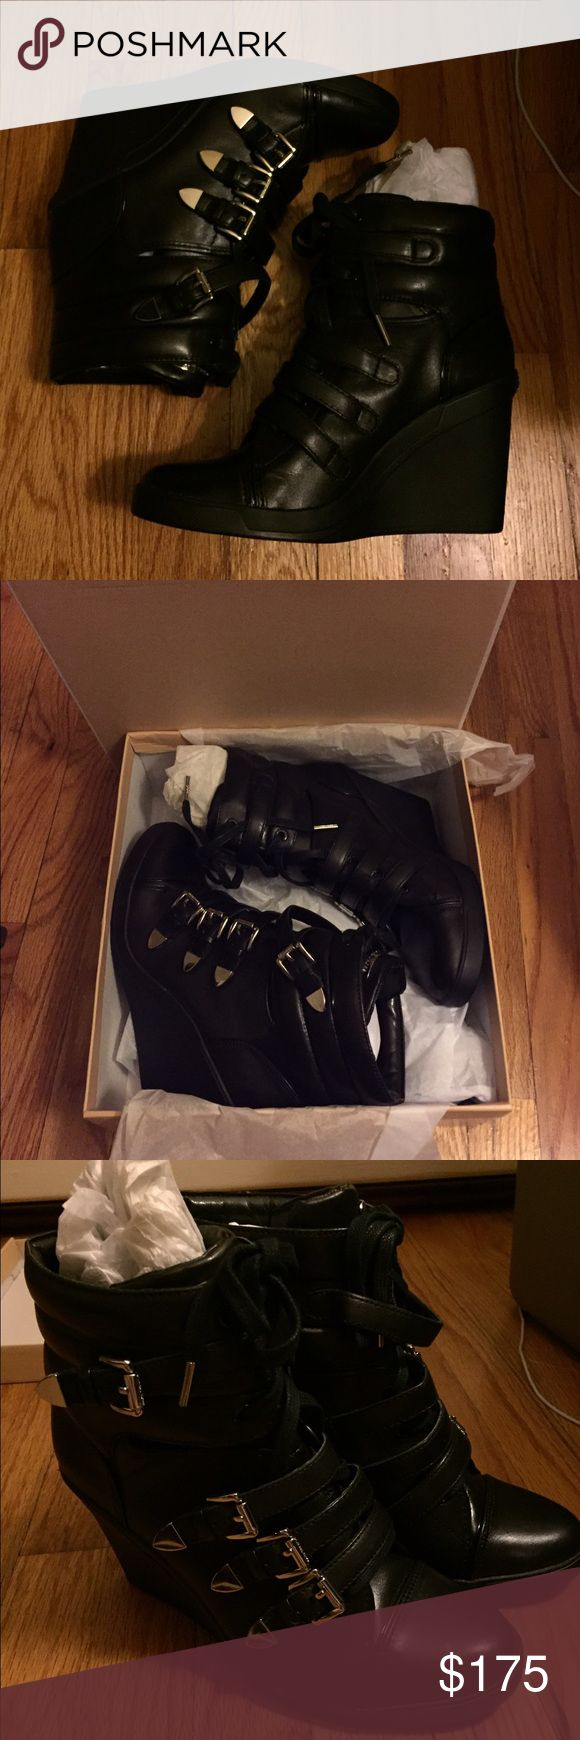 New In BOX Michael Kors Black Wedge Sneakers 10 Brand new in box with all original packaging. Michael Kors Black wedge sneakers. Style is Robin. Size 10. Purchased at the Michael Kors in the mall near me for full price. Price is absolutely firm!!! Michael Kors Shoes Wedges